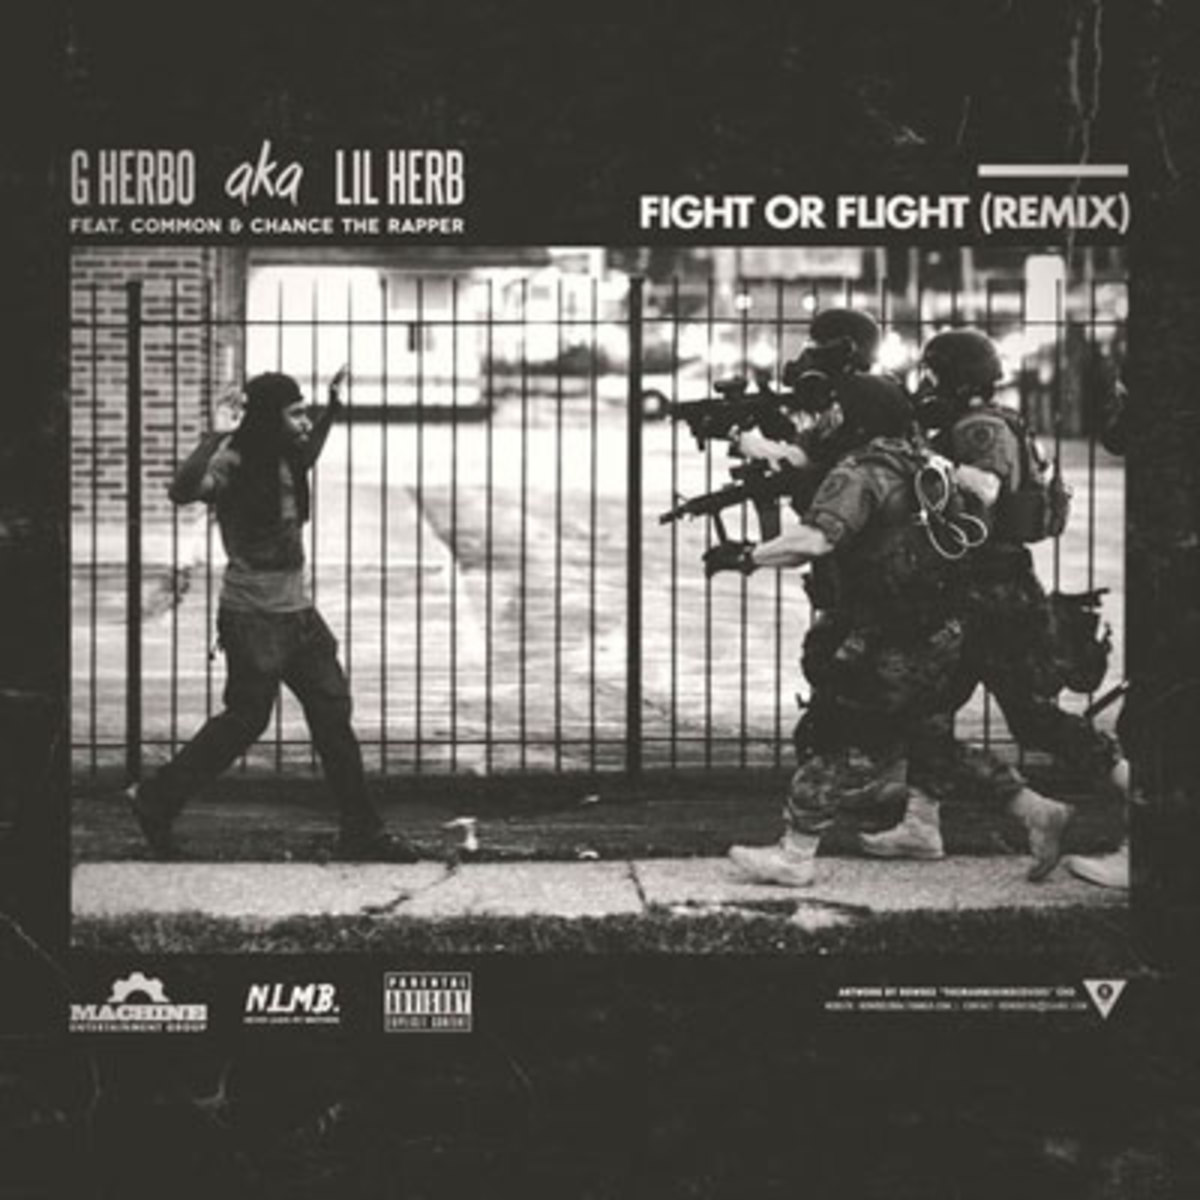 lilherb-fightflightrmx.jpg